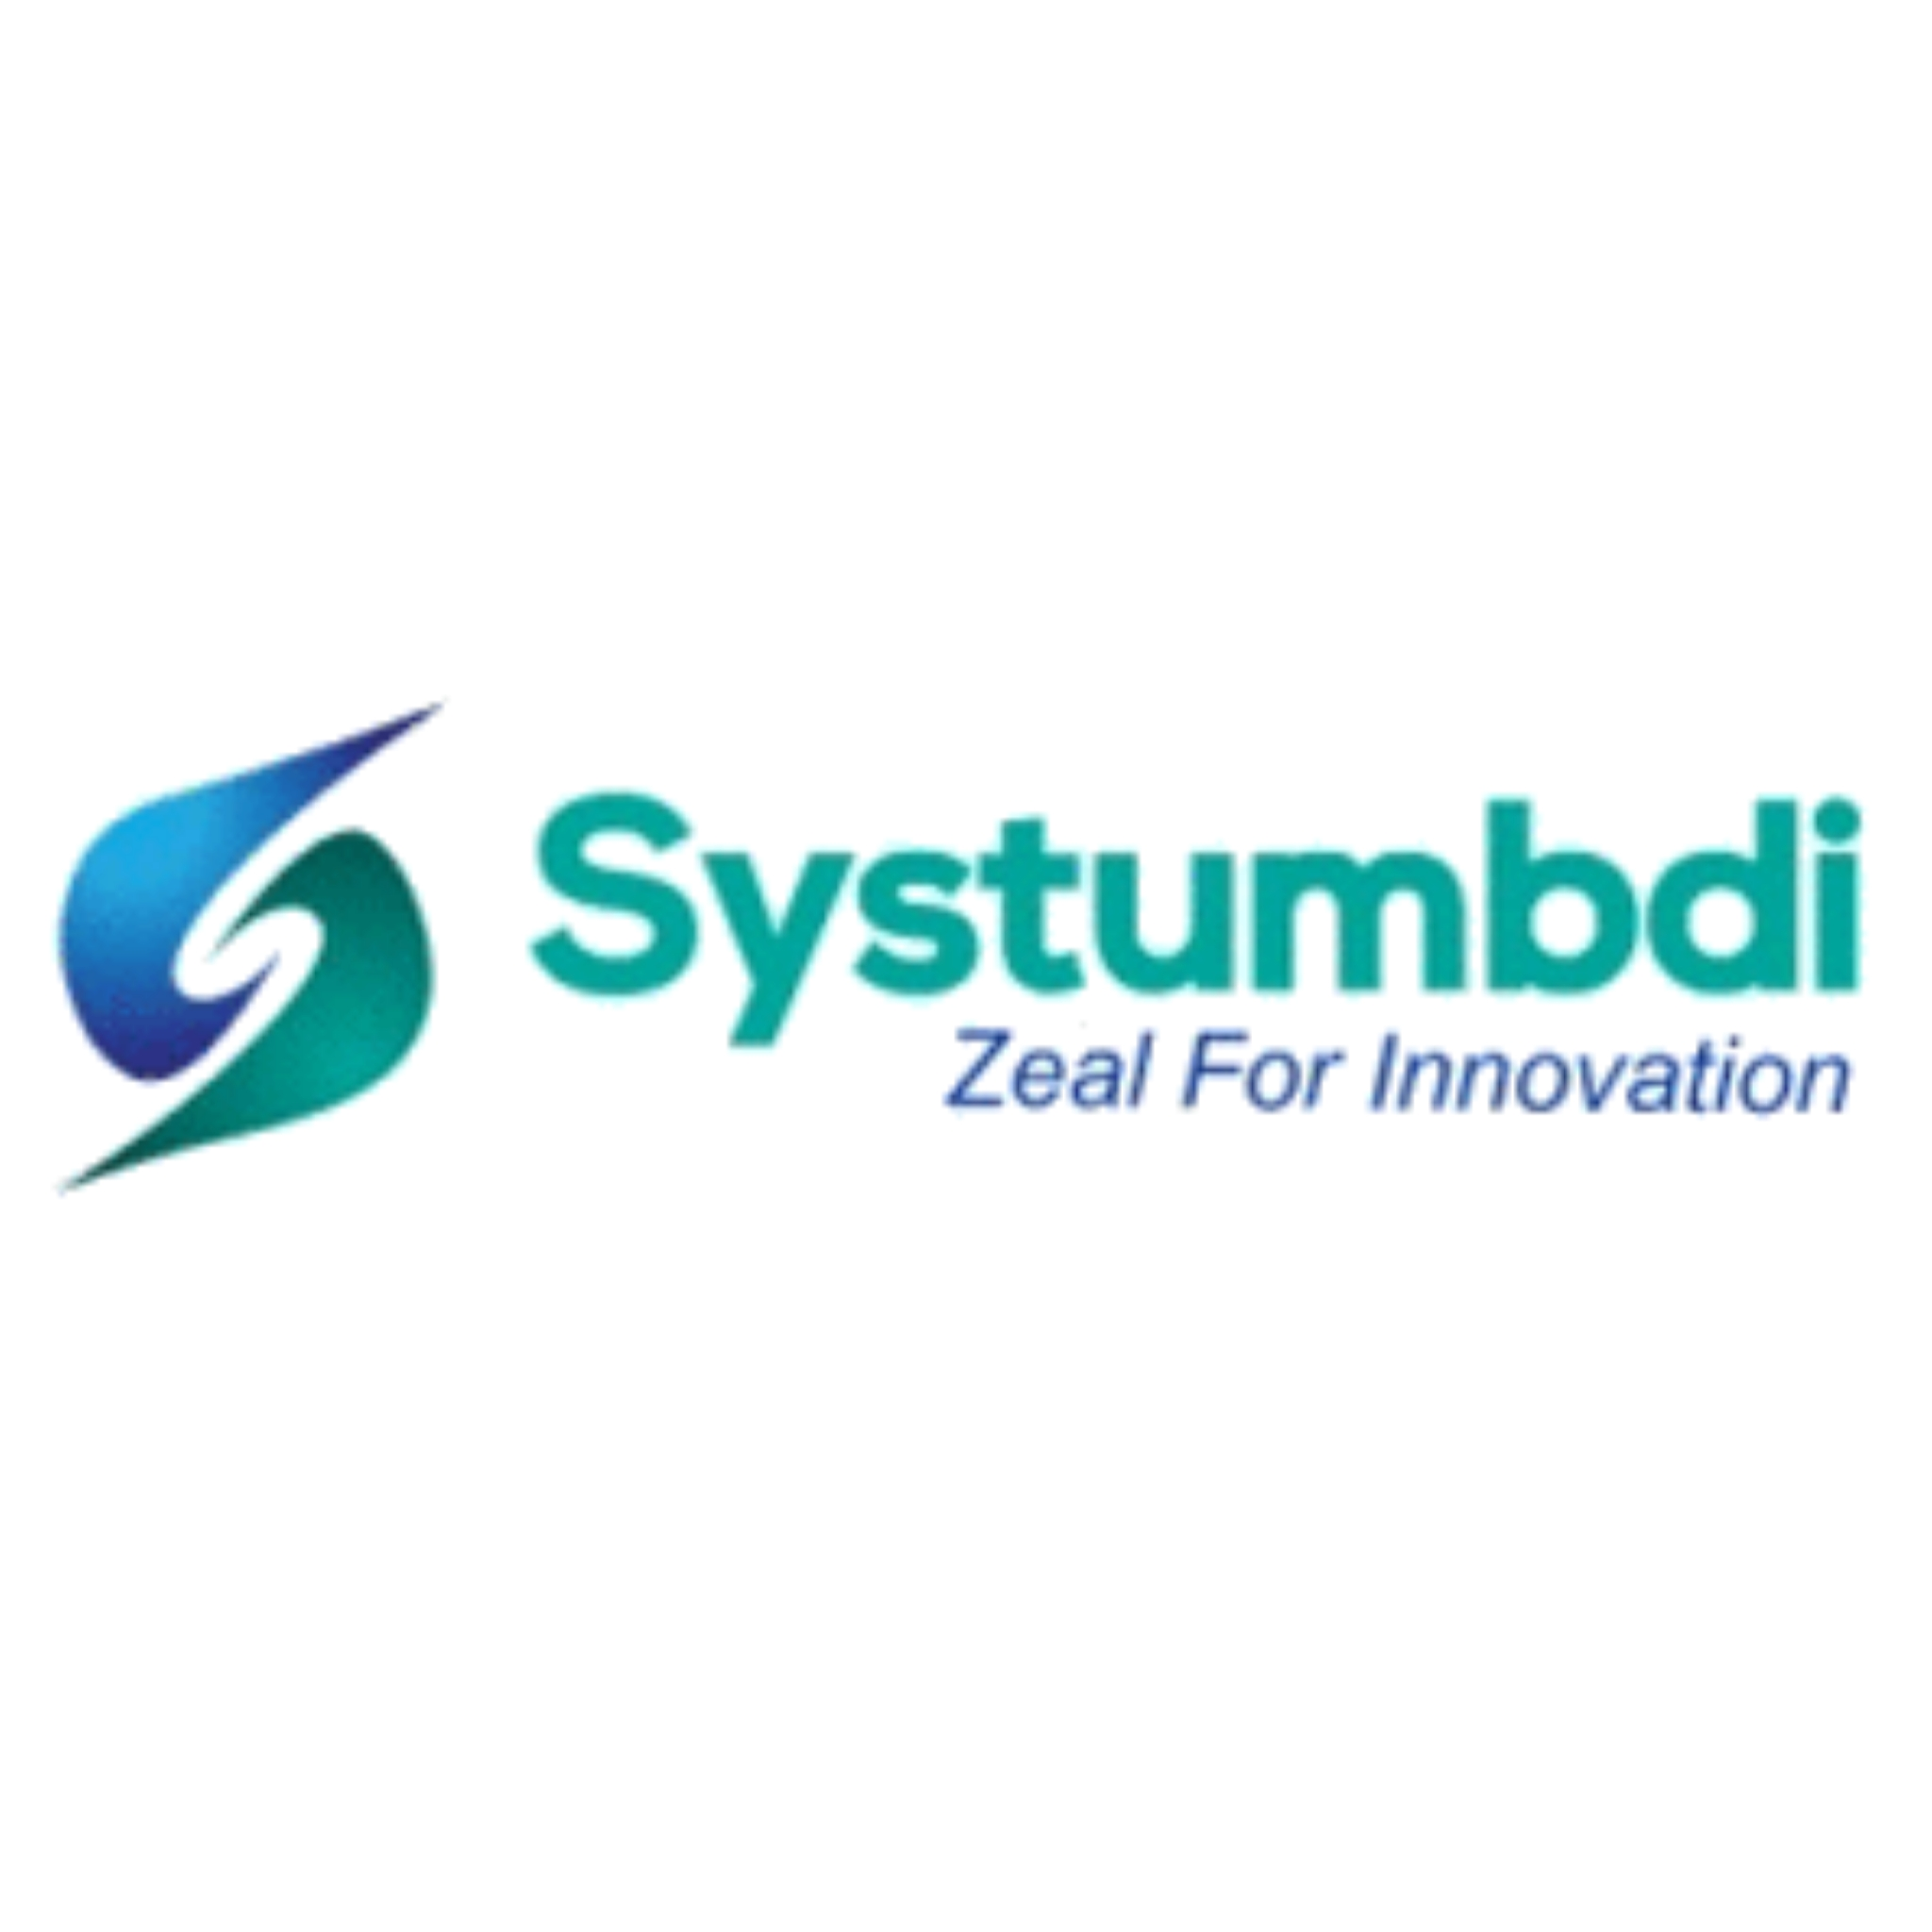 Systumbdi - Zeal for Innovation